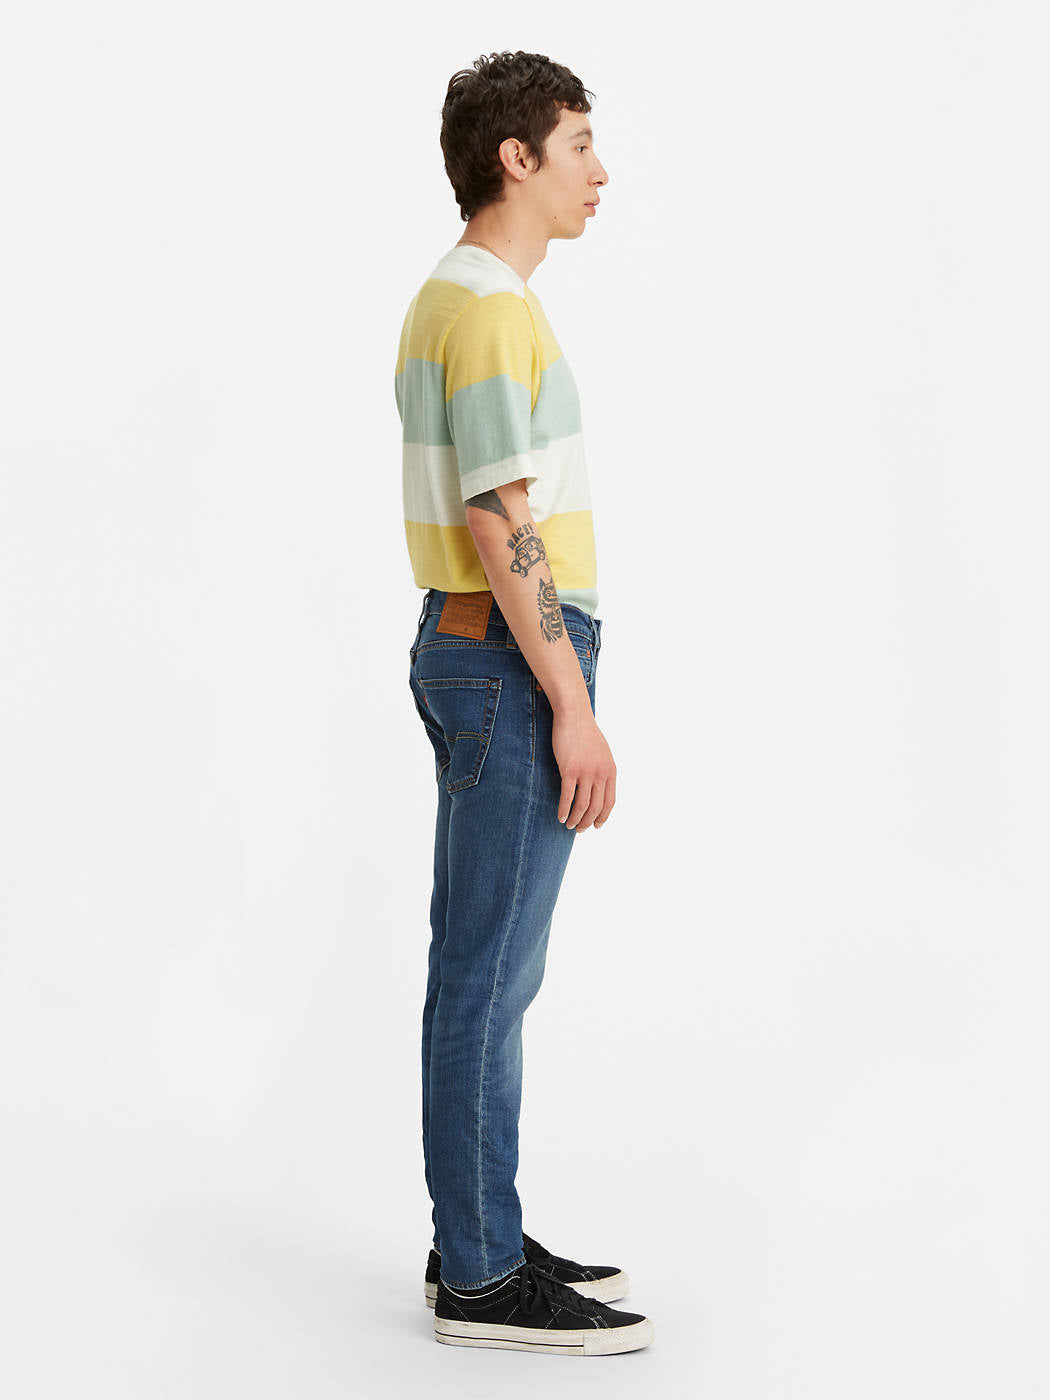 LEVIS M'S PANTS 512 SLIM TAPER JEANS - FOLSOM BLUES